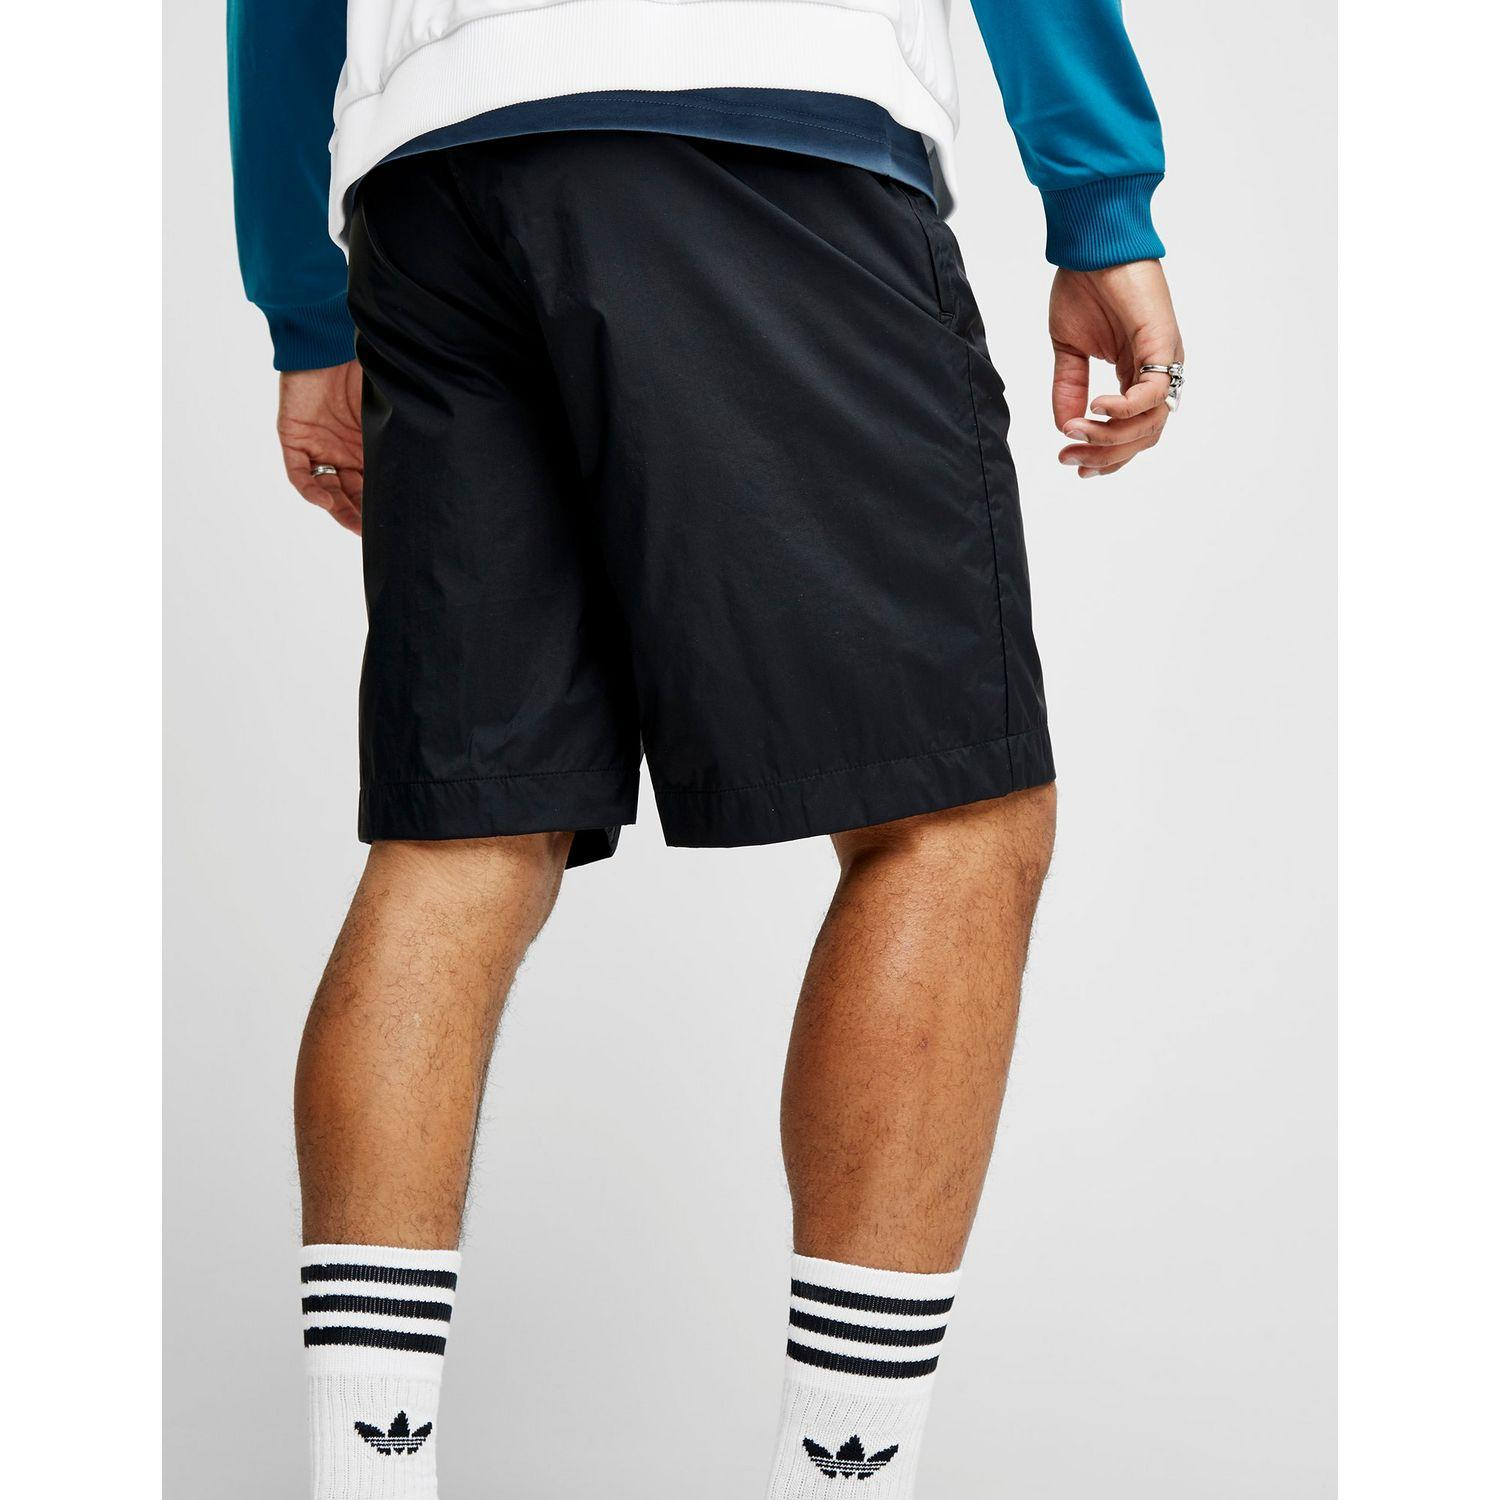 Adidas Black Nmd Woven Shorts Men's for men